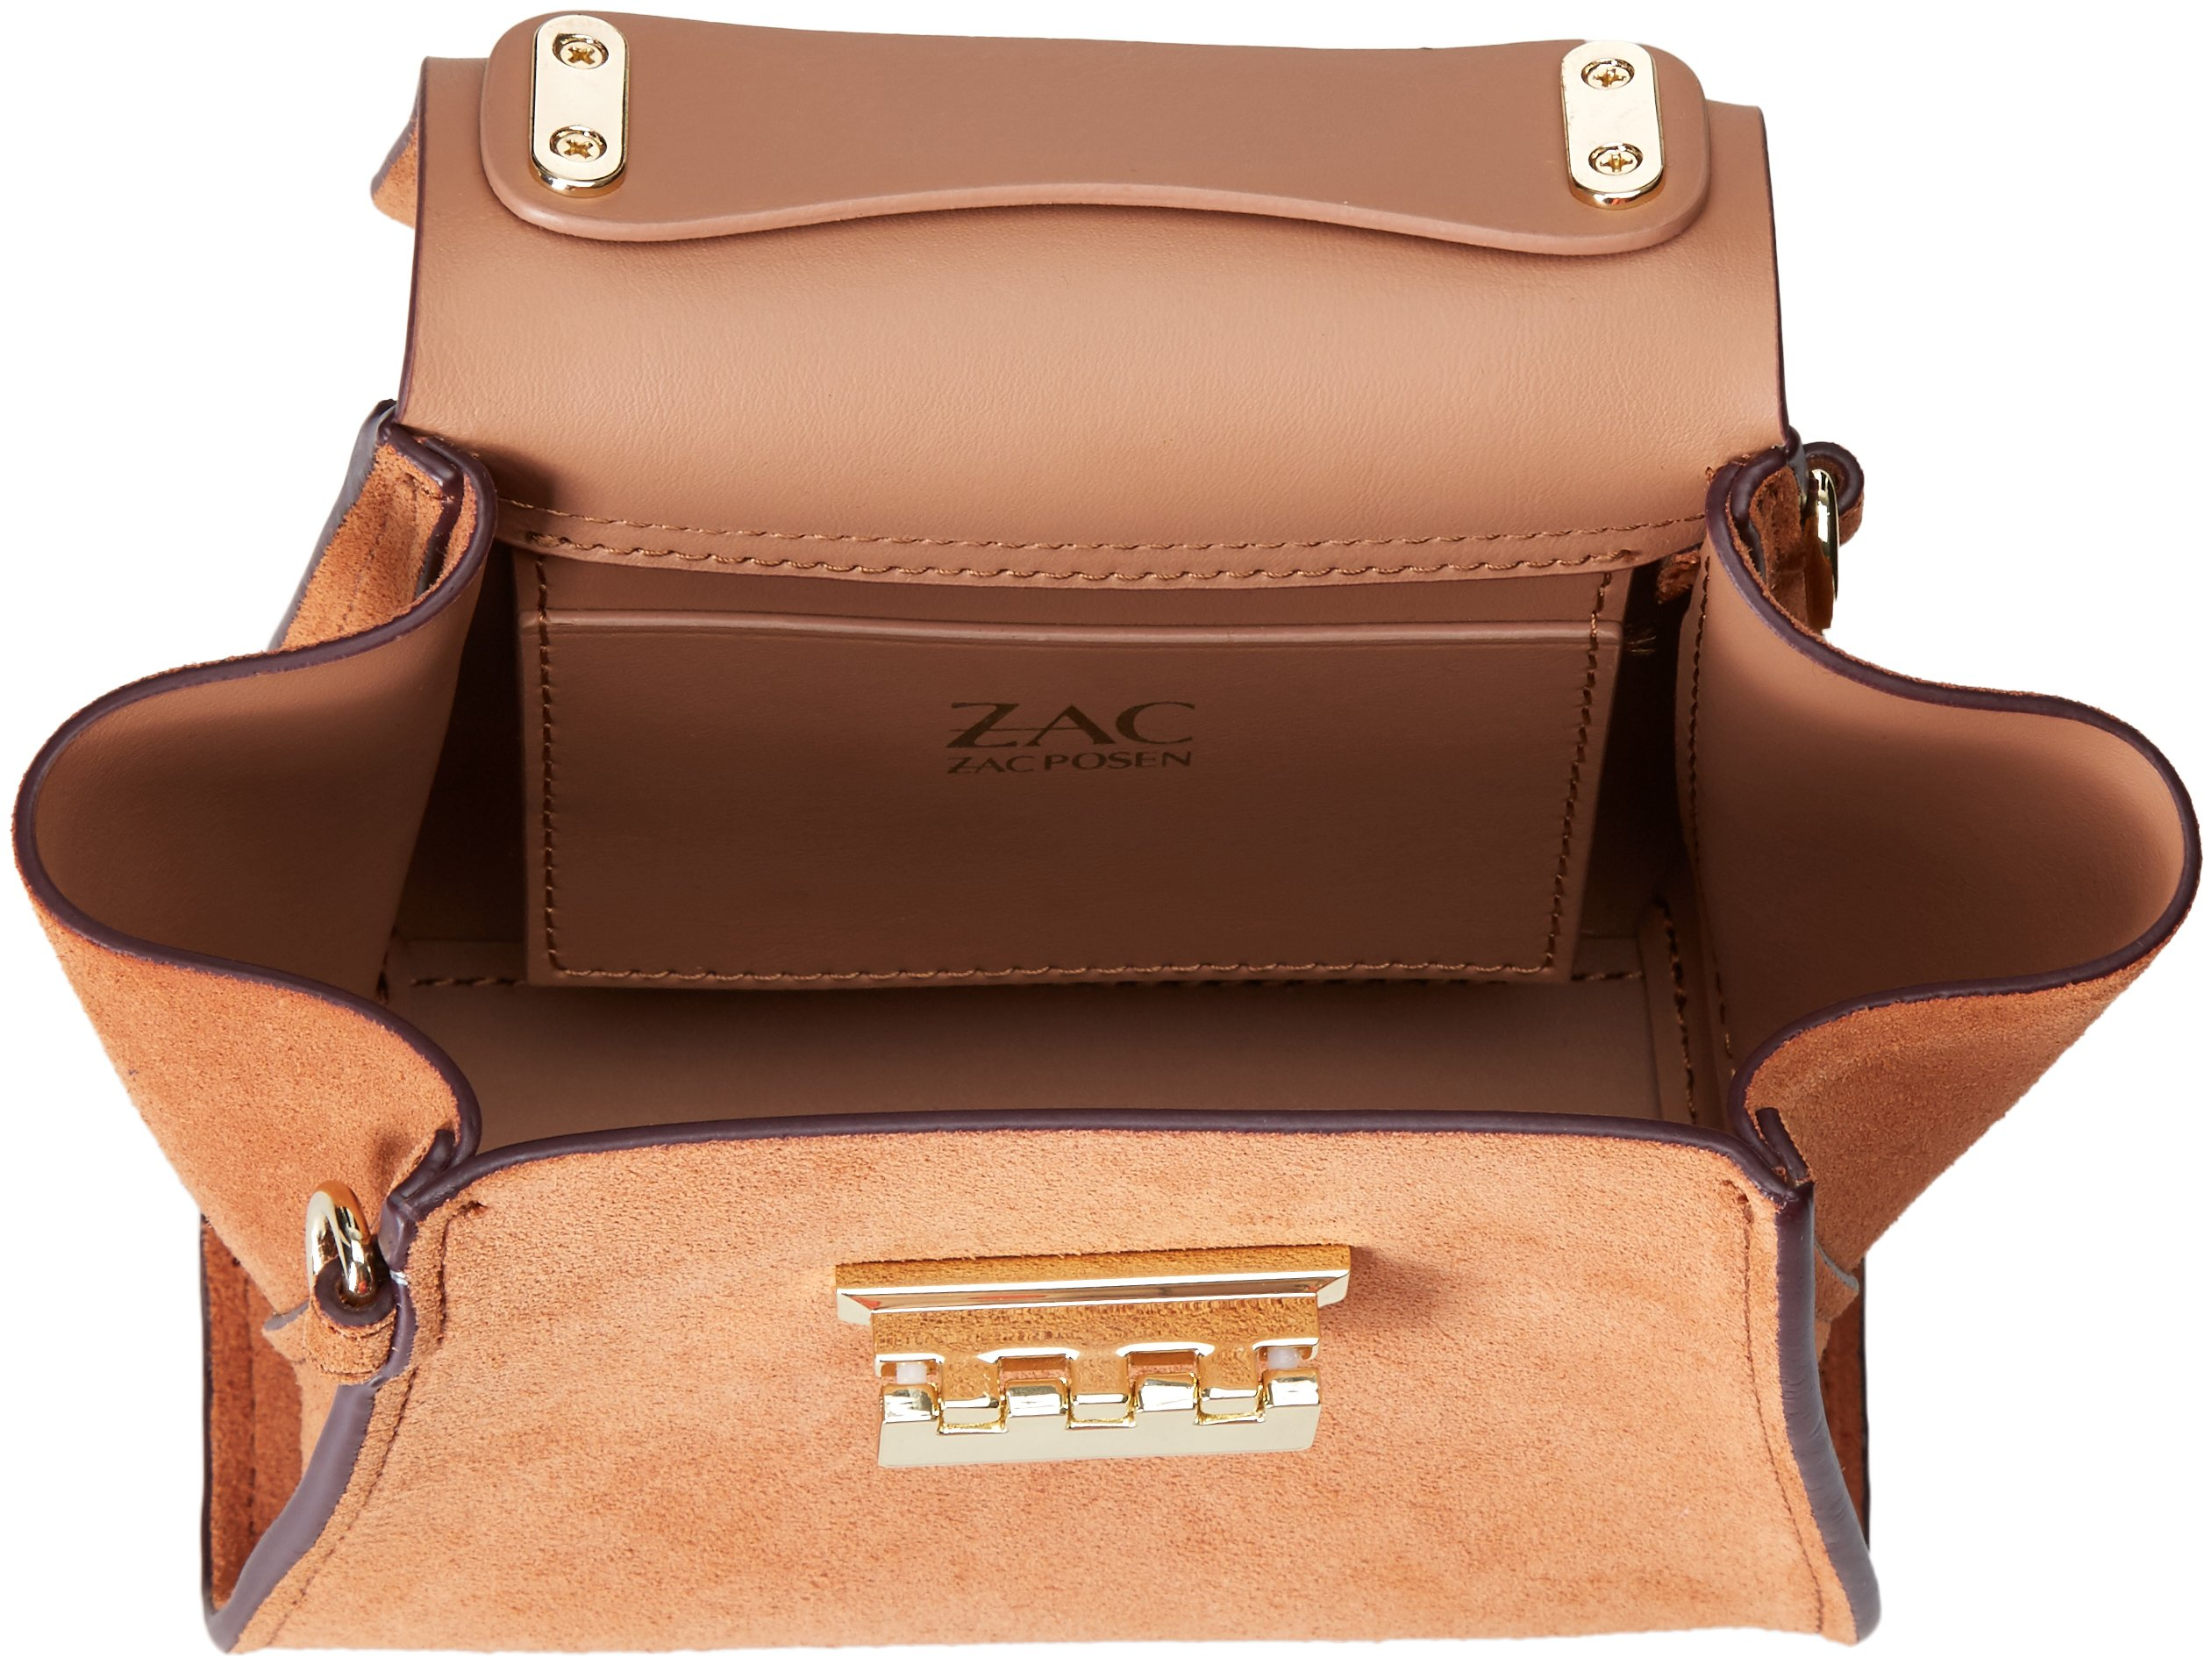 ZAC Zac Posen Eartha Iconic Top Handle Mini-Suede Colorblock W/ Baglace by ZAC Zac Posen (Image #5)